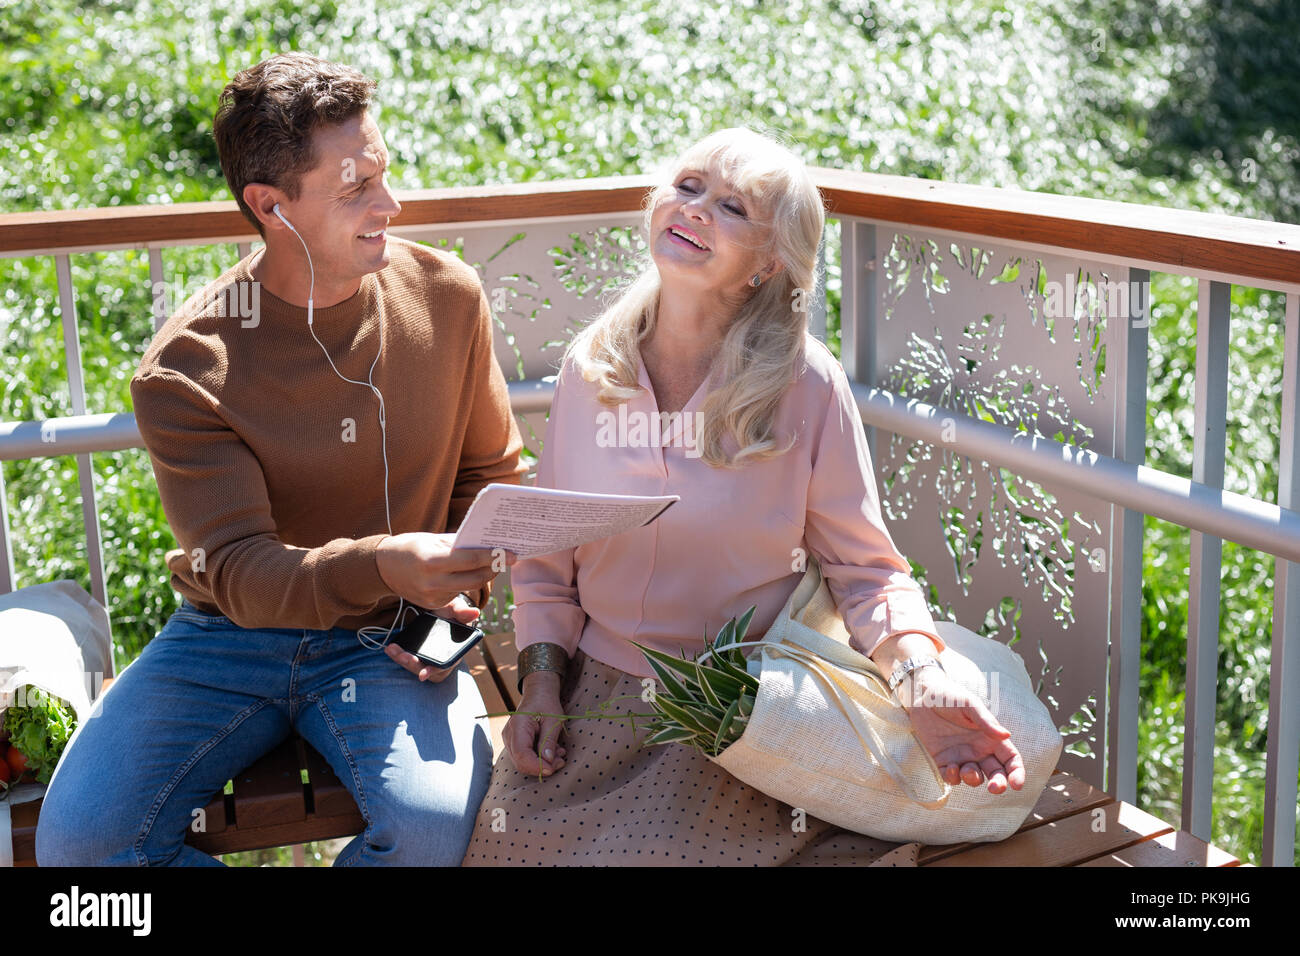 Relaxed blonde retired woman enjoying her life - Stock Image